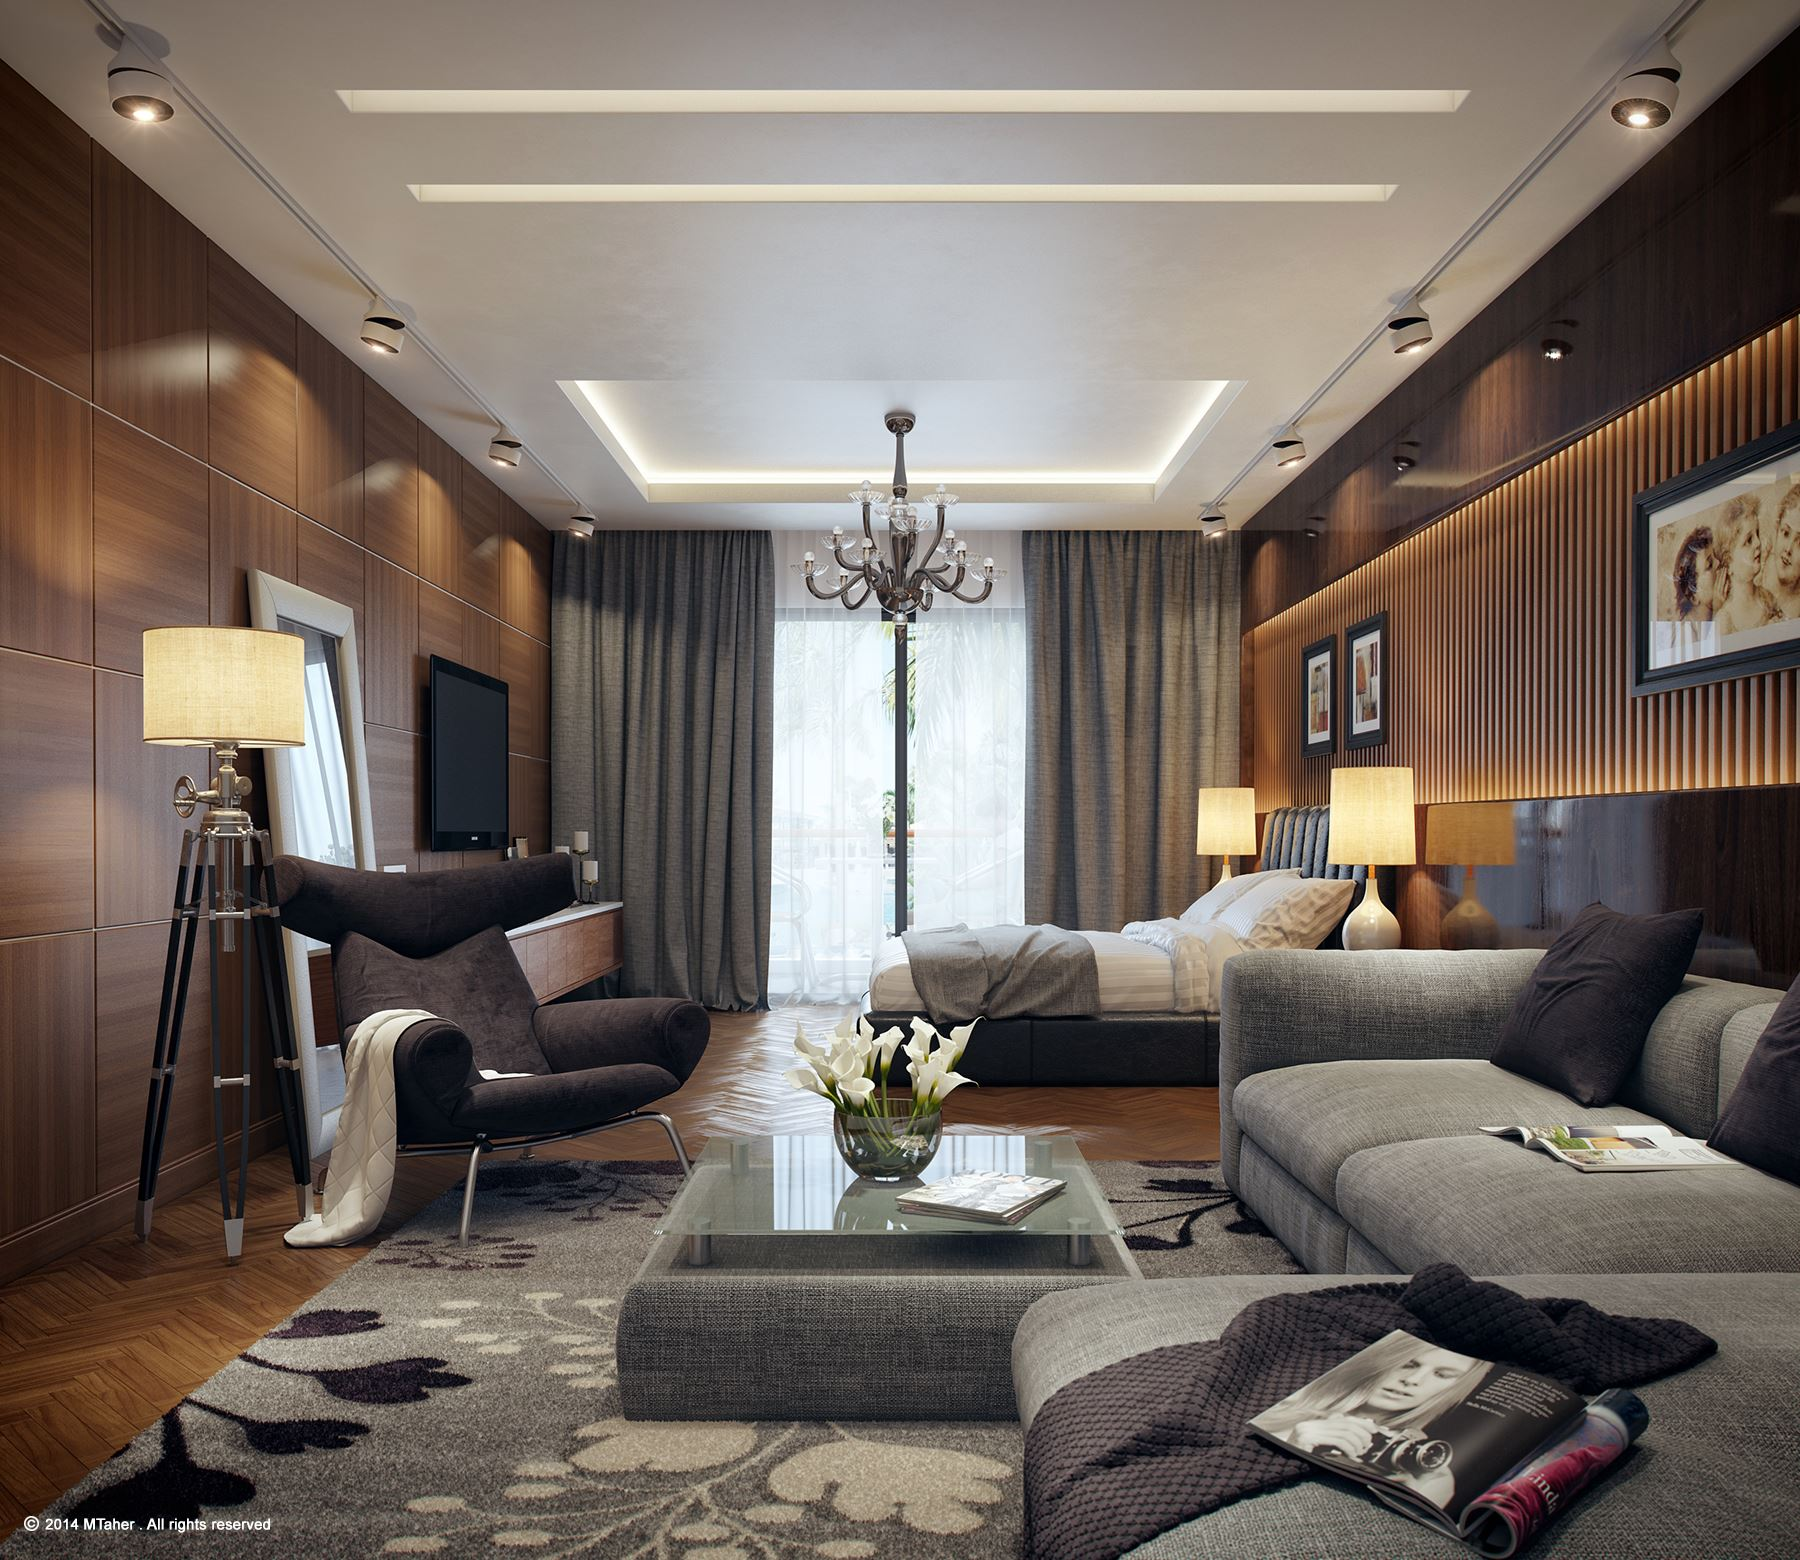 Luxury Bed Room: 25 Newest Bedrooms That We Are In Love With